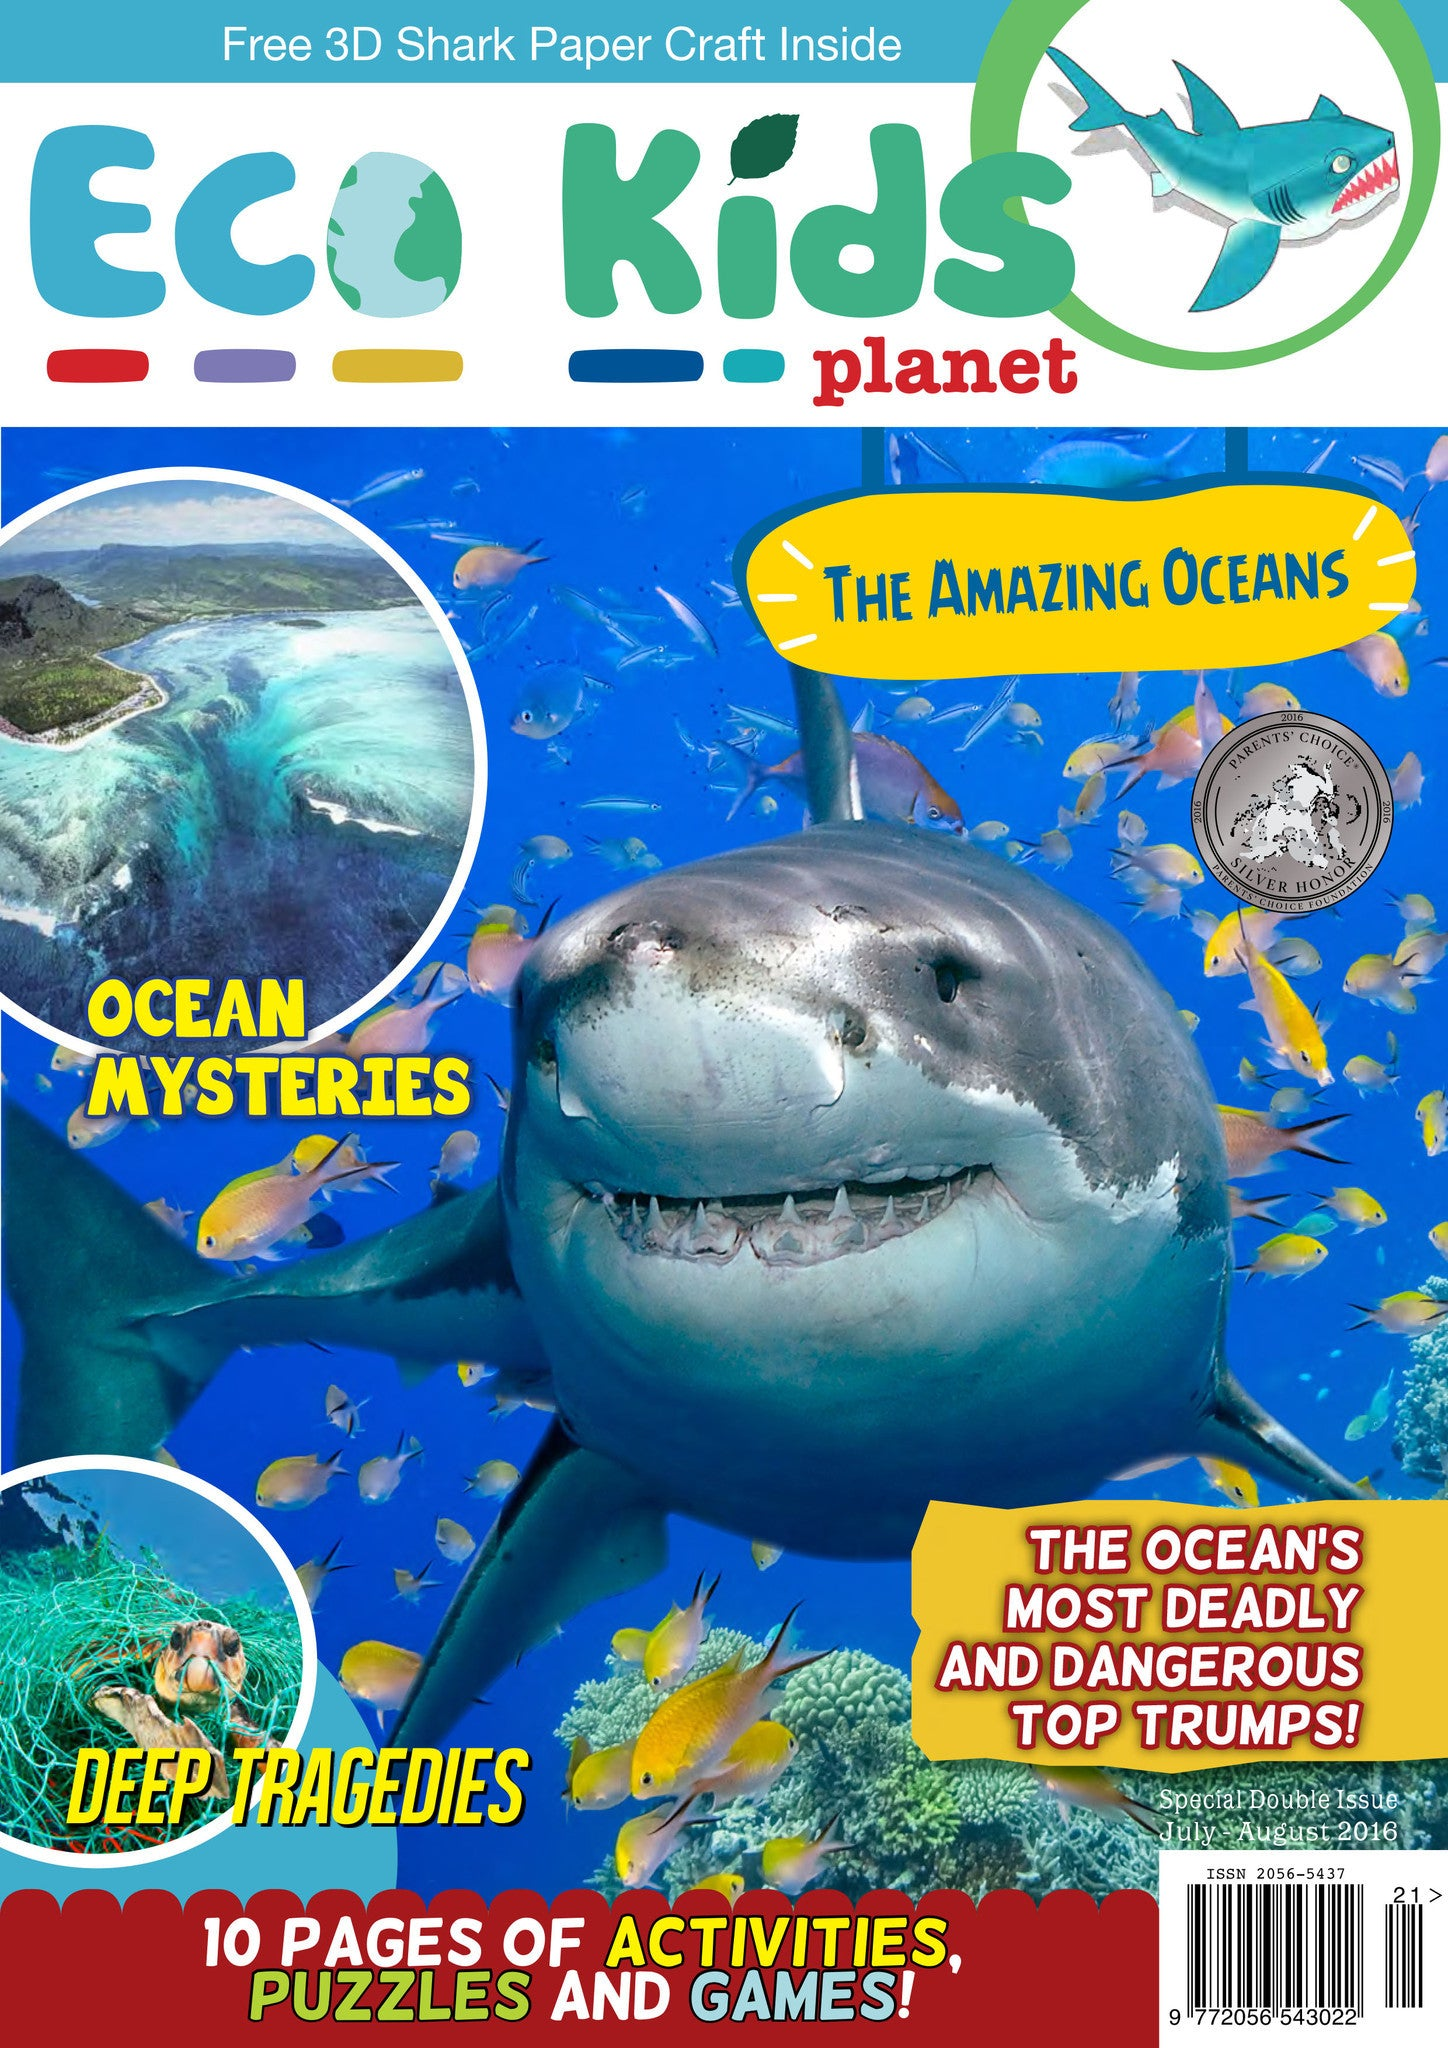 Kid's Nature Magazines - Issue 21/22 - The Amazing Oceans